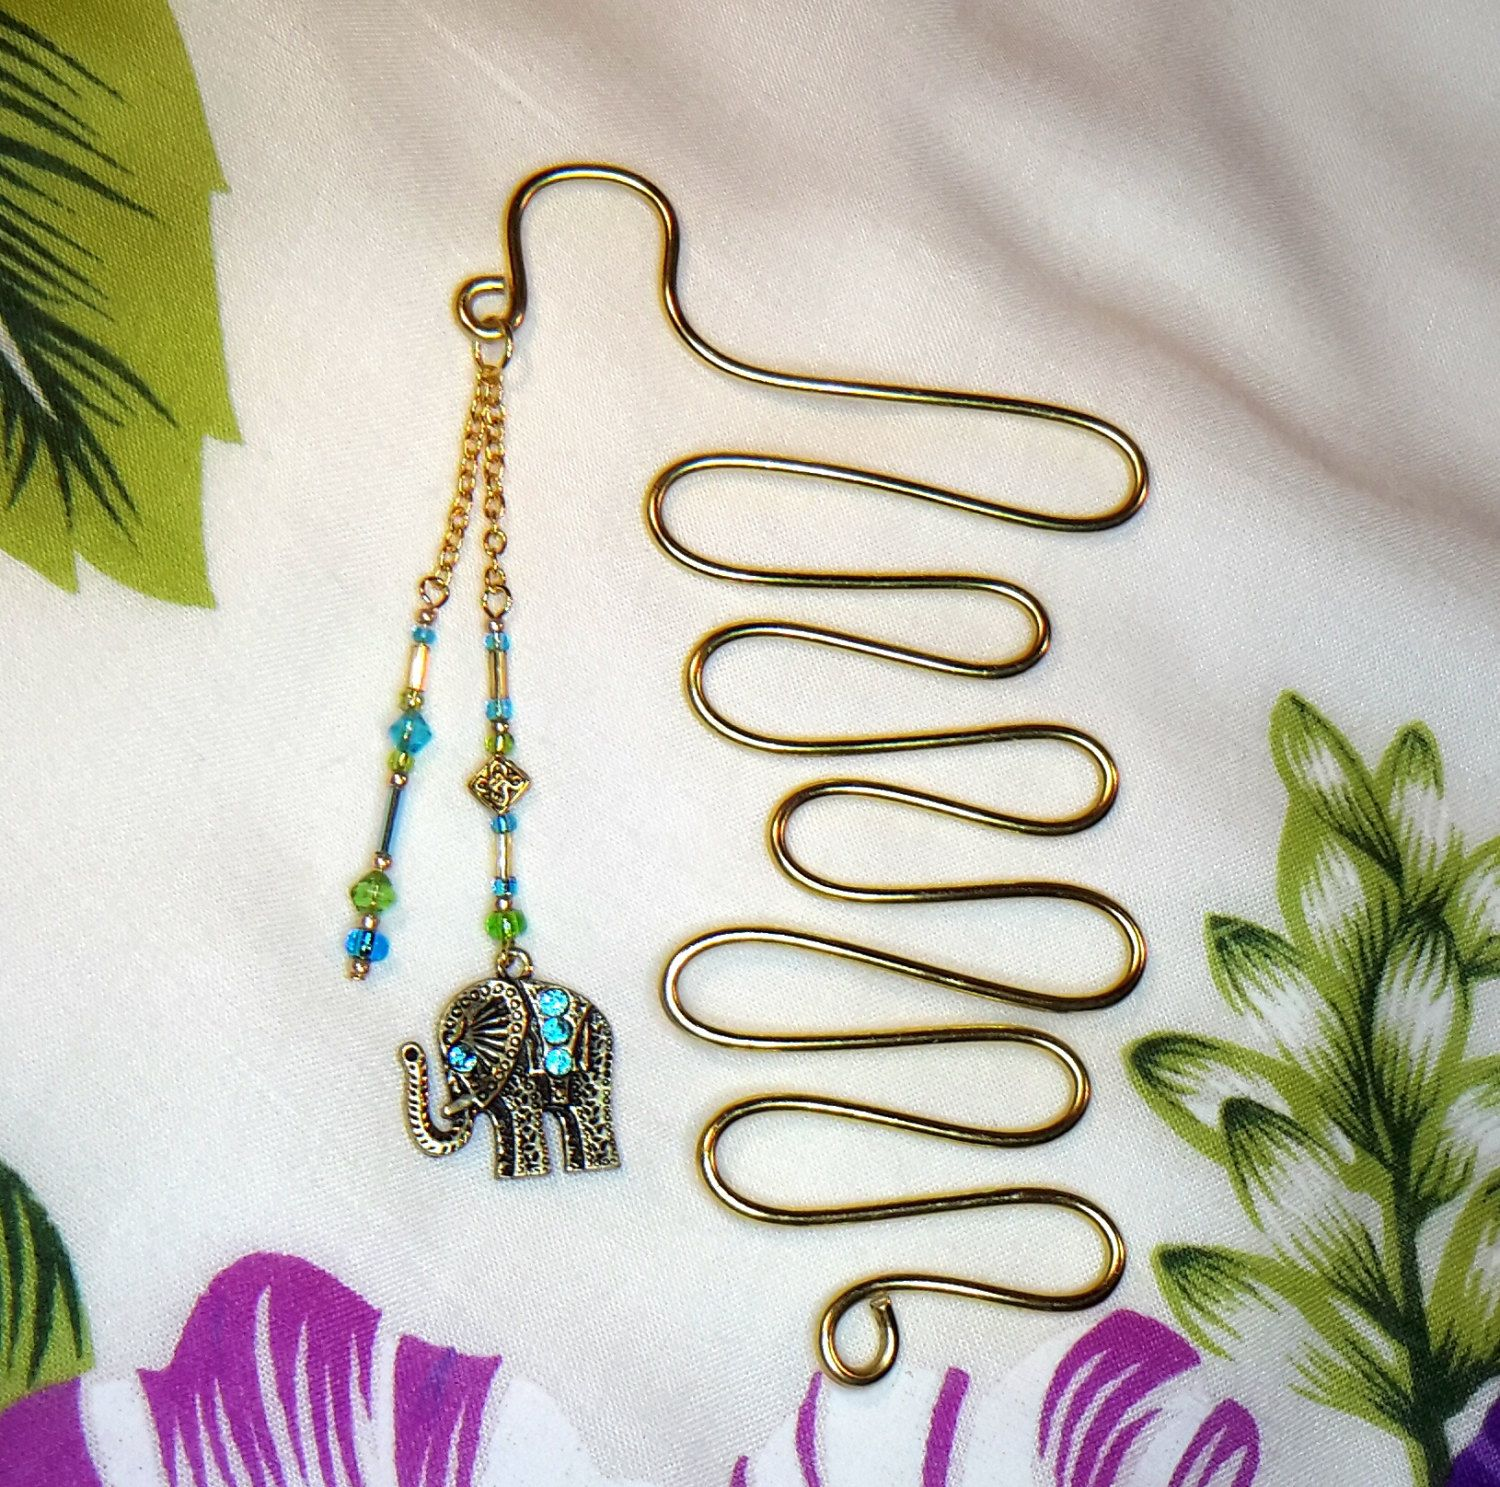 Wire Elephant Bookmark Wiring Info Ideal Circuit Breaker Finder 61532 Manual Unique Gold With Blue And Green Beaded Dangle Rh Pinterest Co Uk Clay